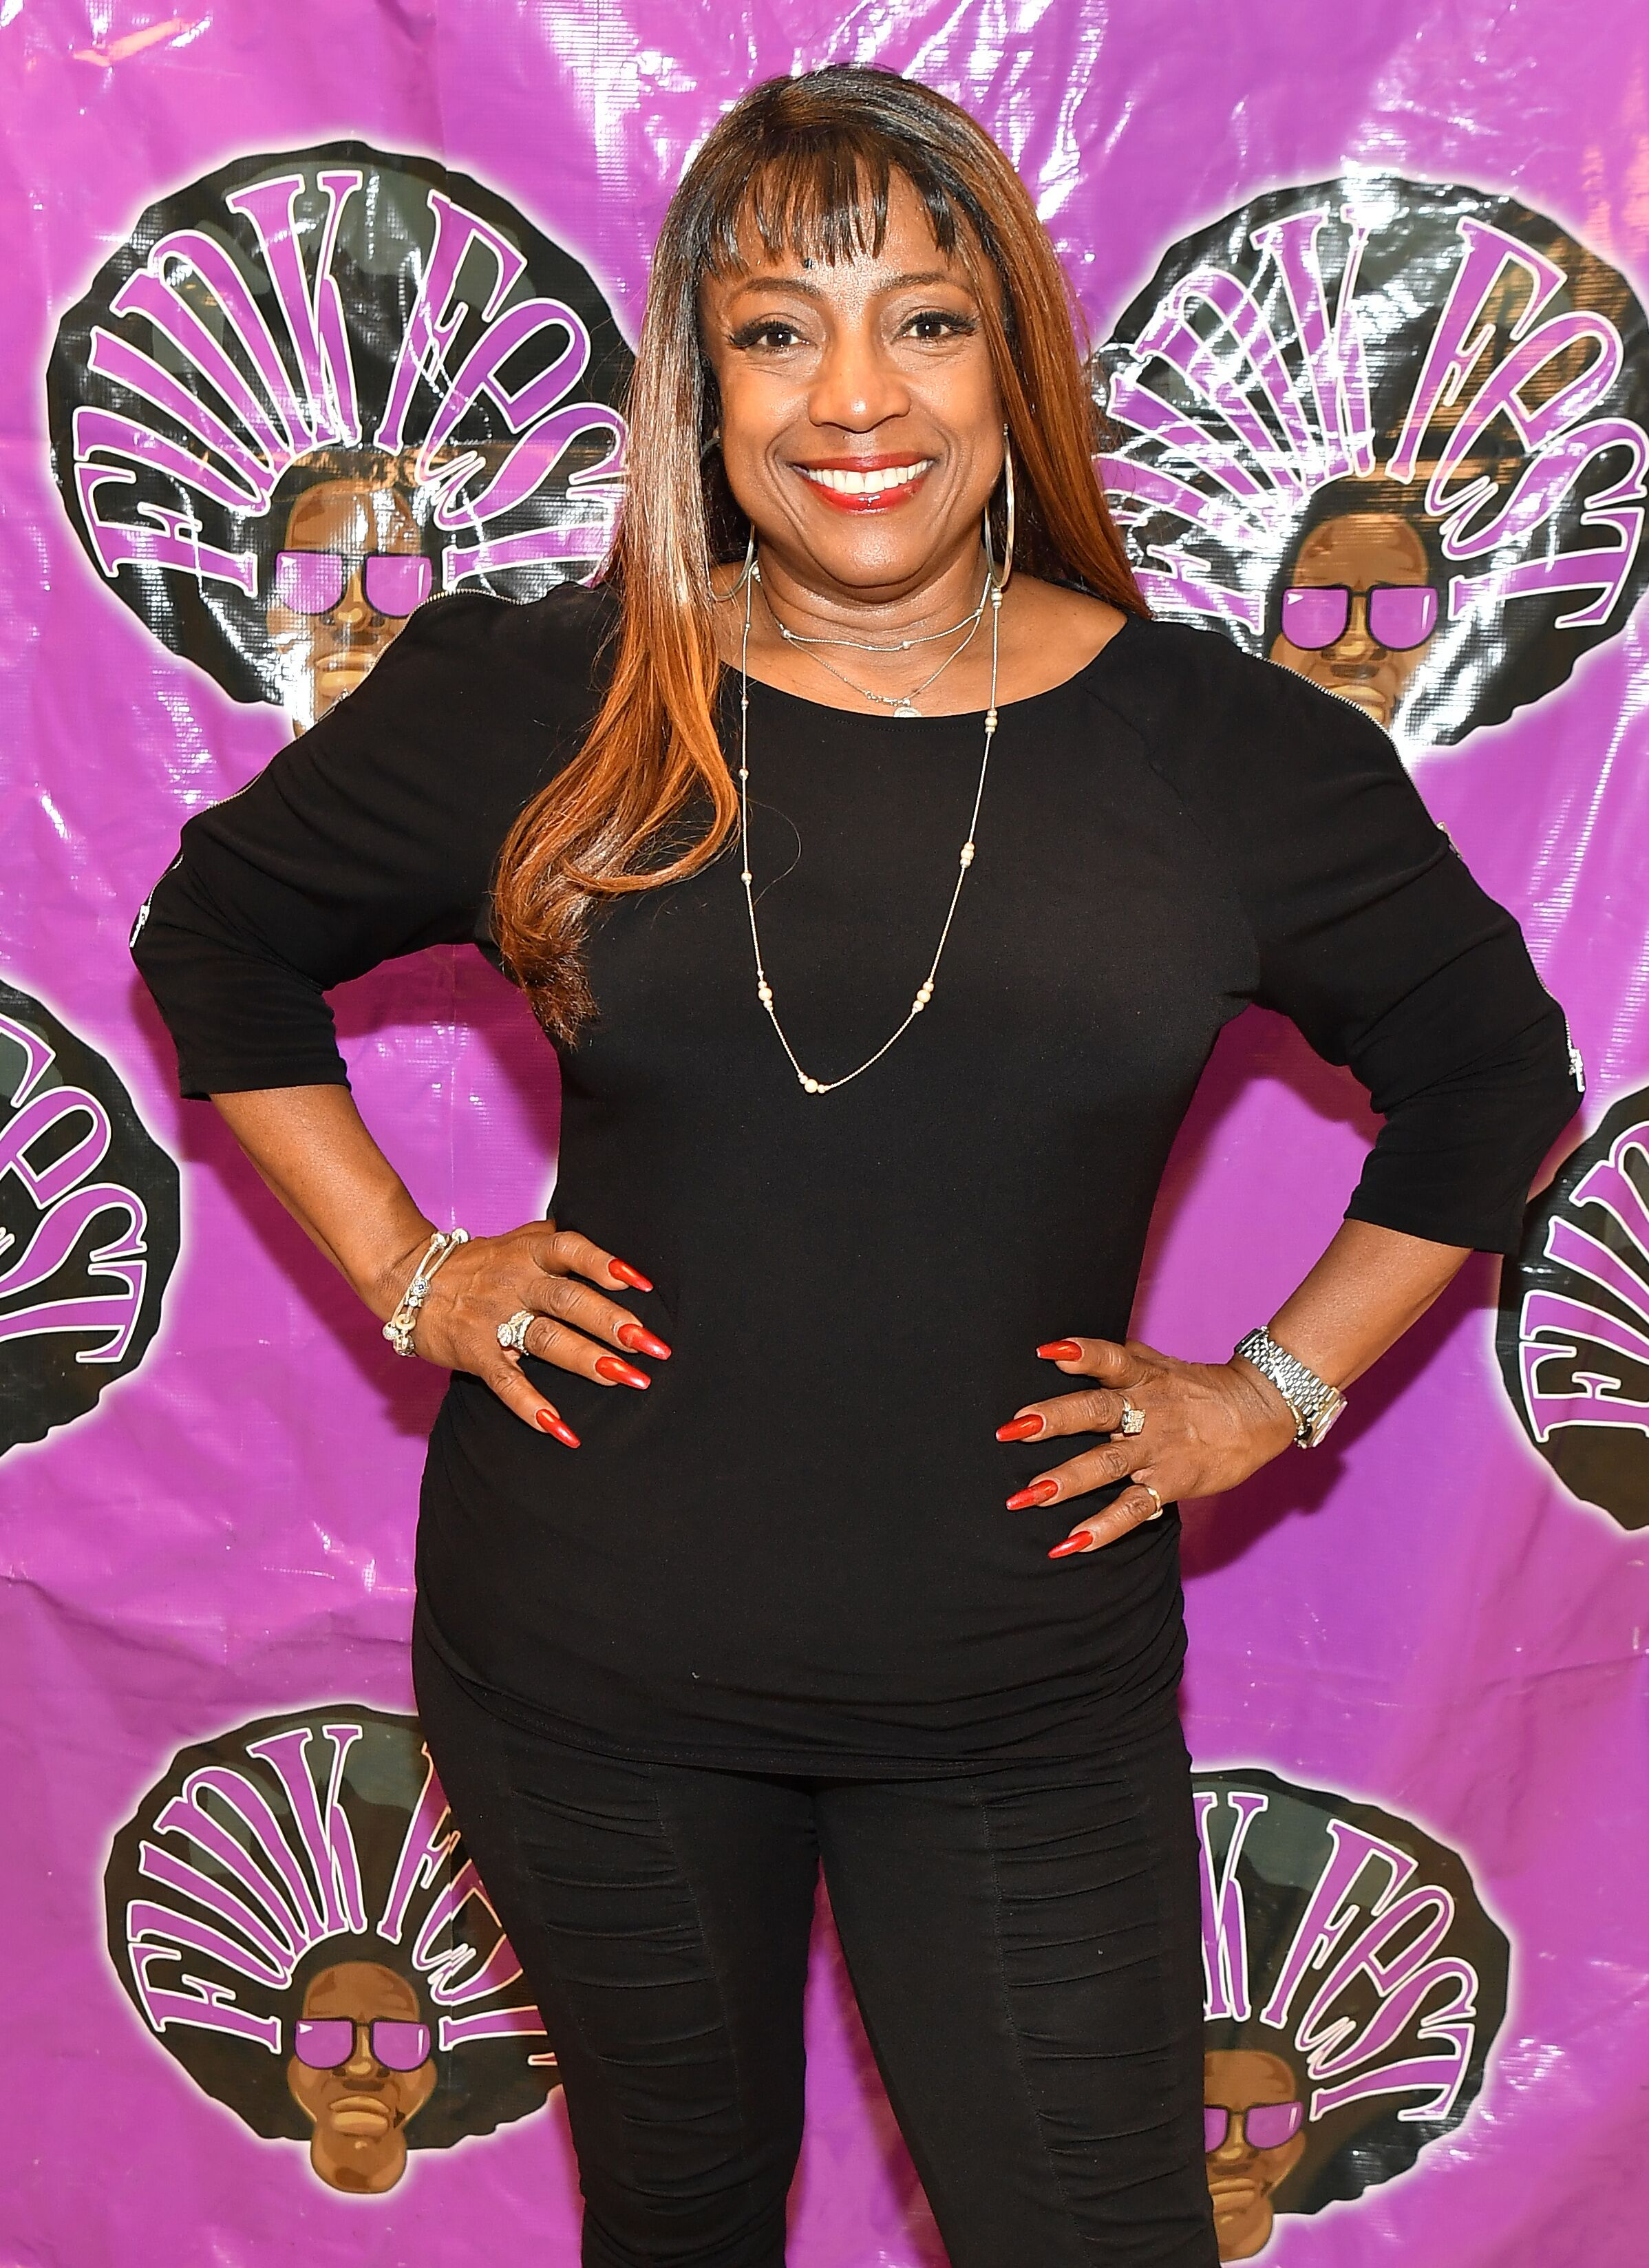 BernNadette Stanis at the 2018 Funk Fest Tour at Wolf Creek Amphitheater on May 19, 2018. | Source: Getty Images